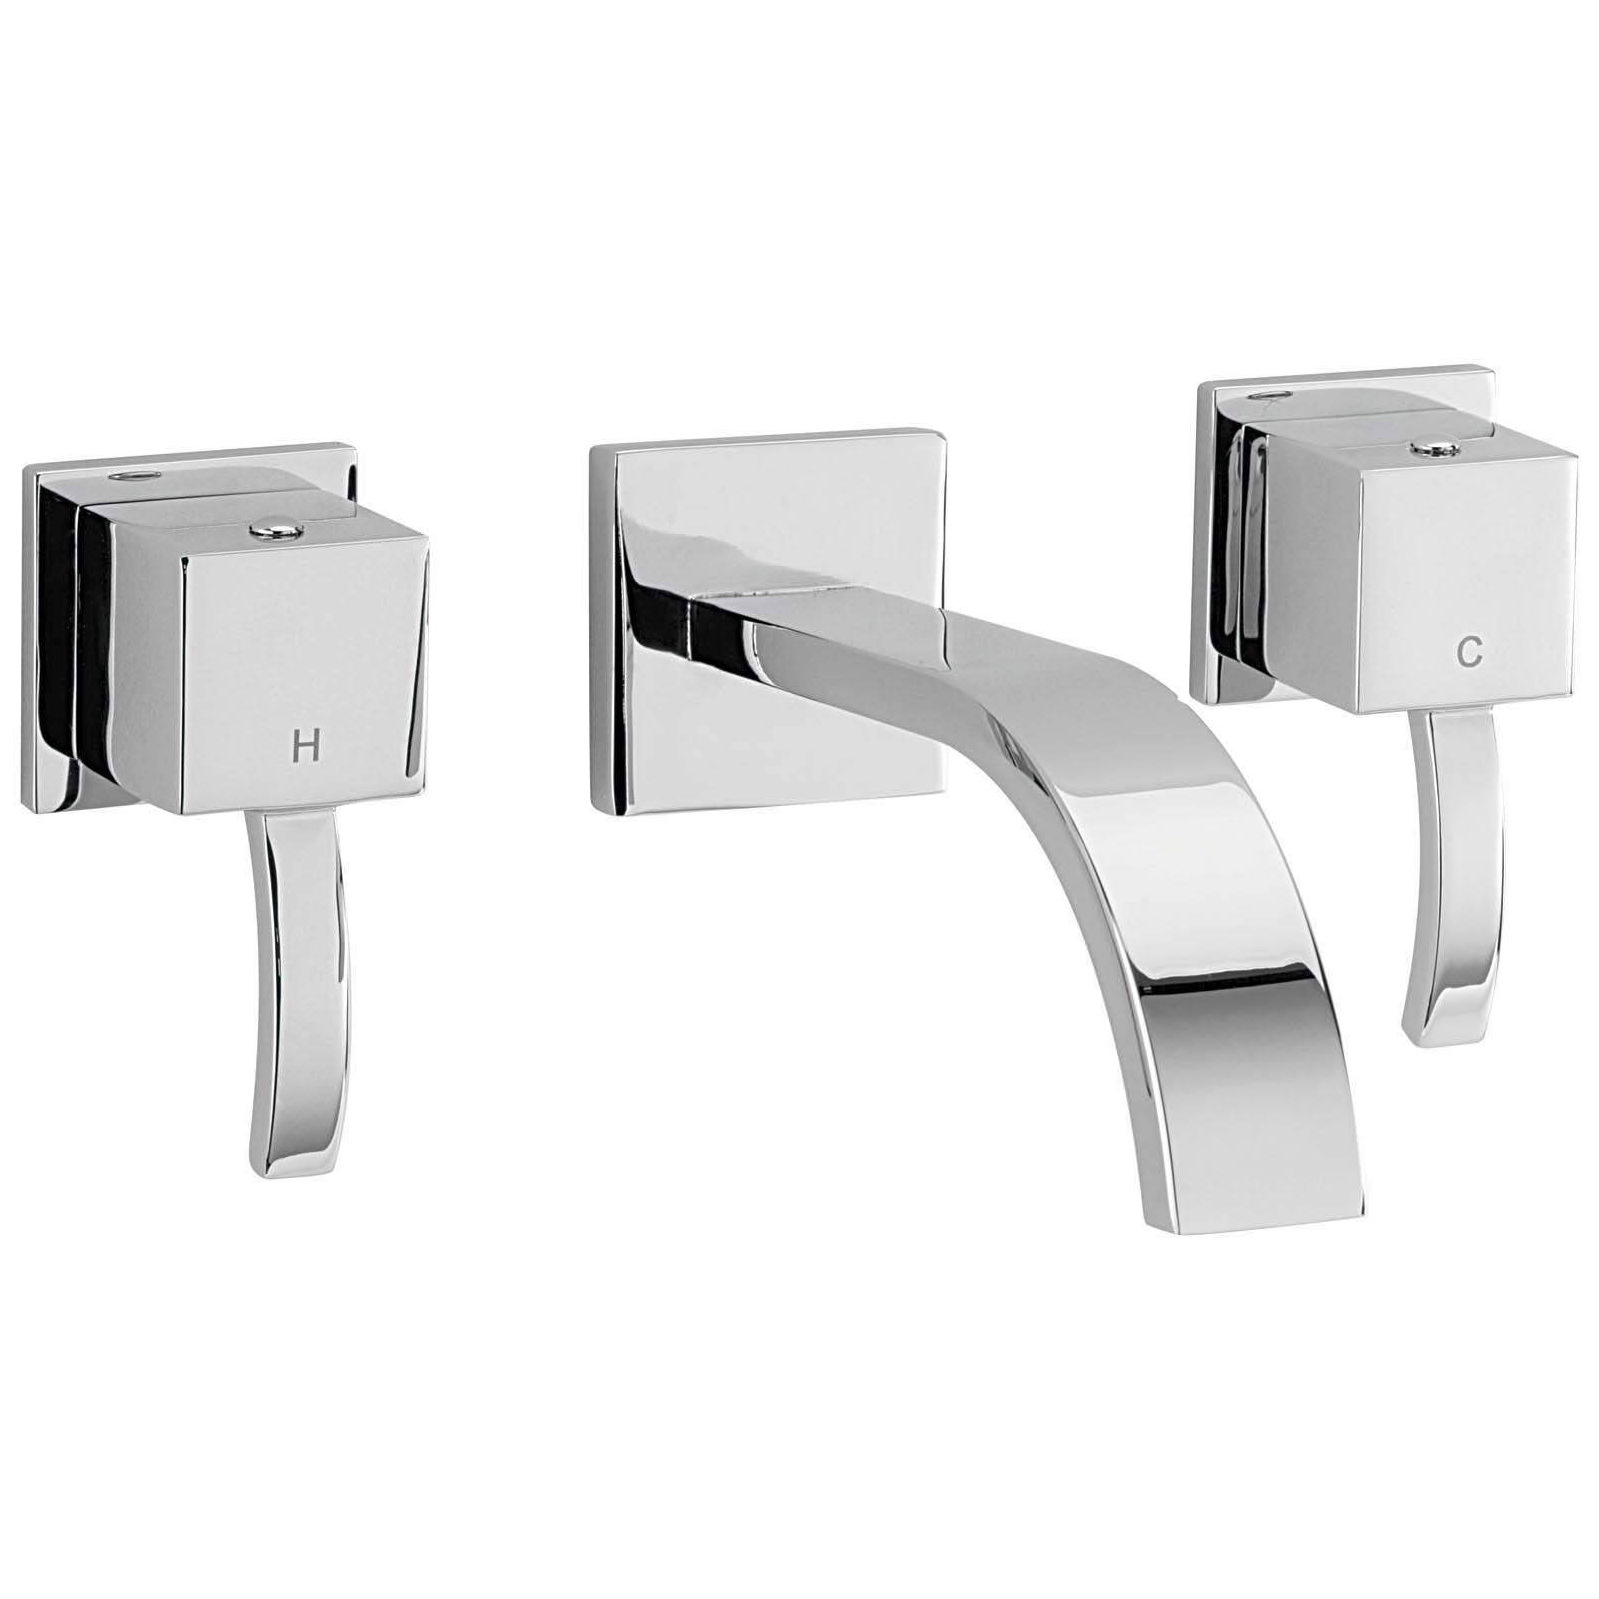 Sagittarius Arke 3 Hole Wall Mounted Basin Mixer Tap AR/207/C